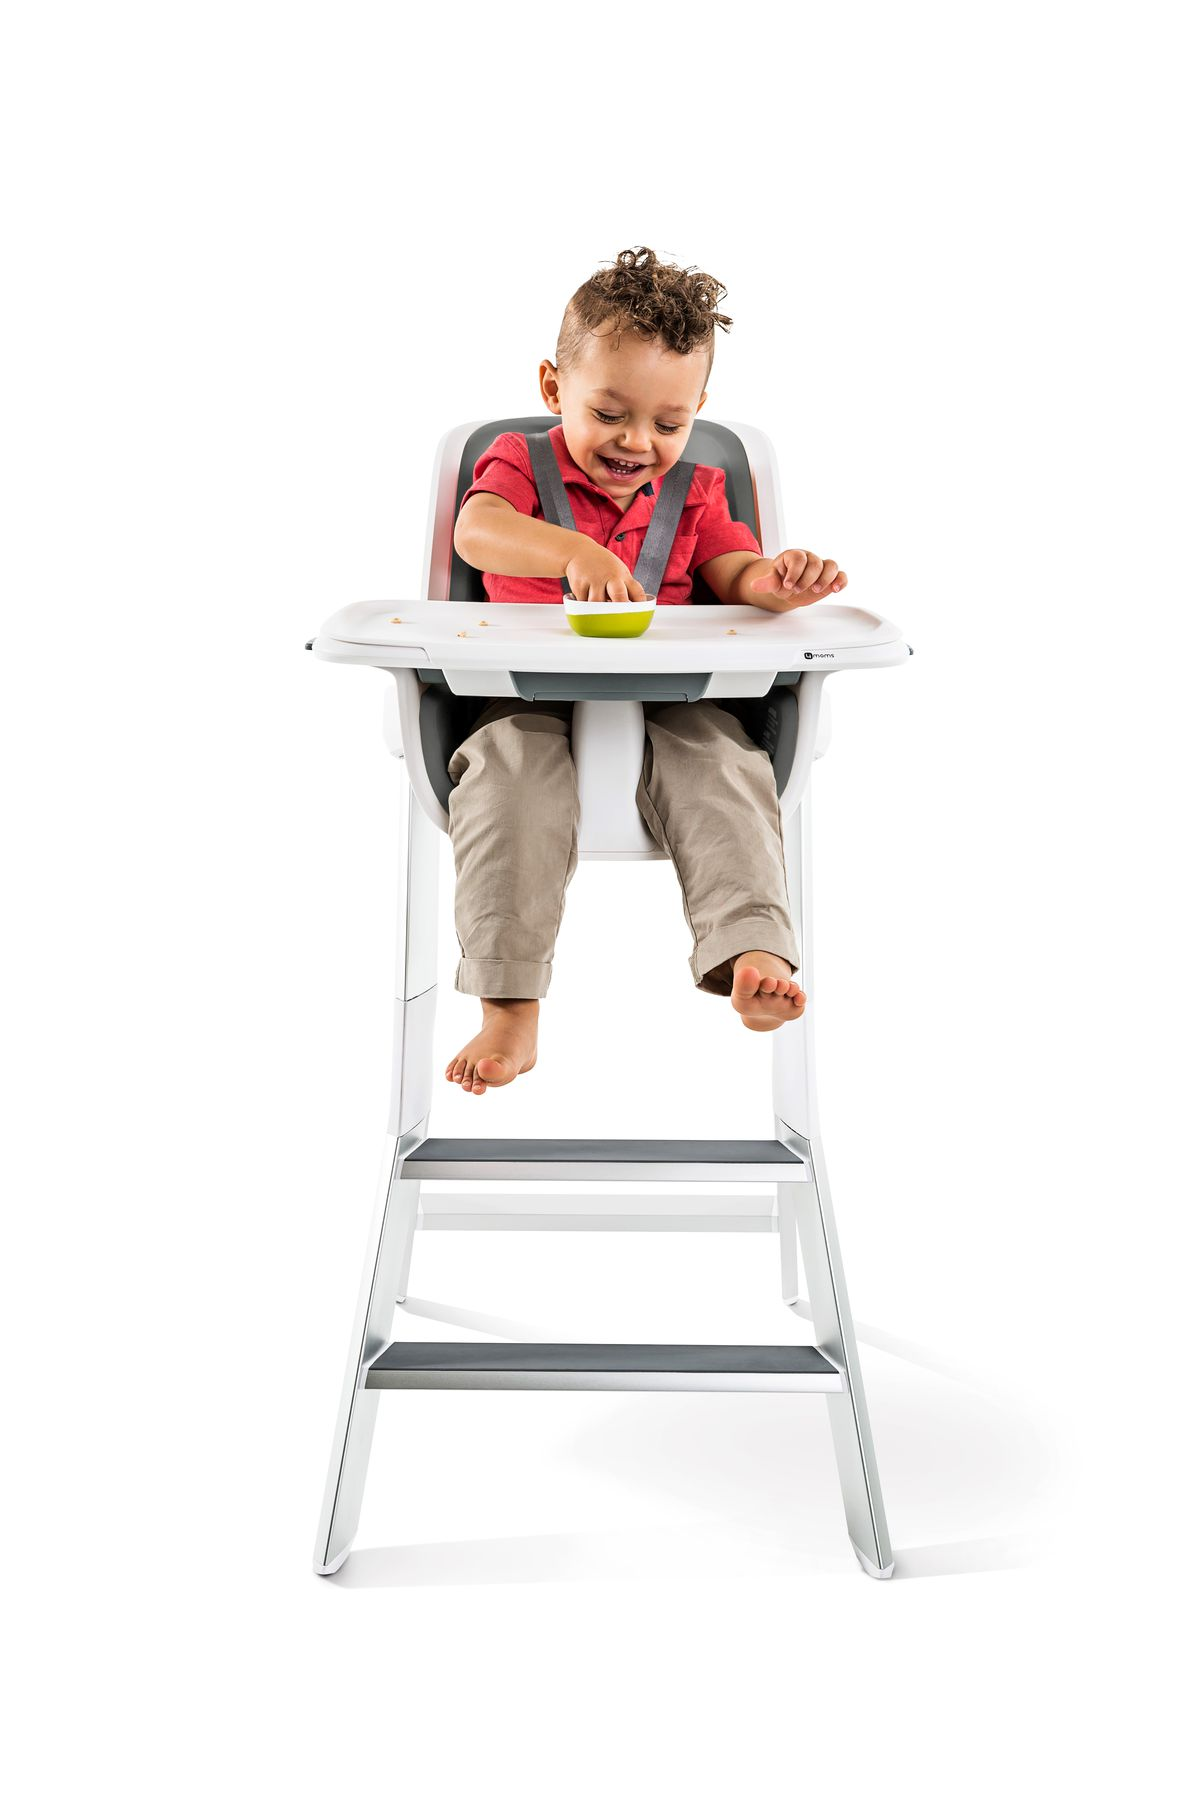 4moms high chair review portable massage for sale this magnetic has some clever features but it s missing the